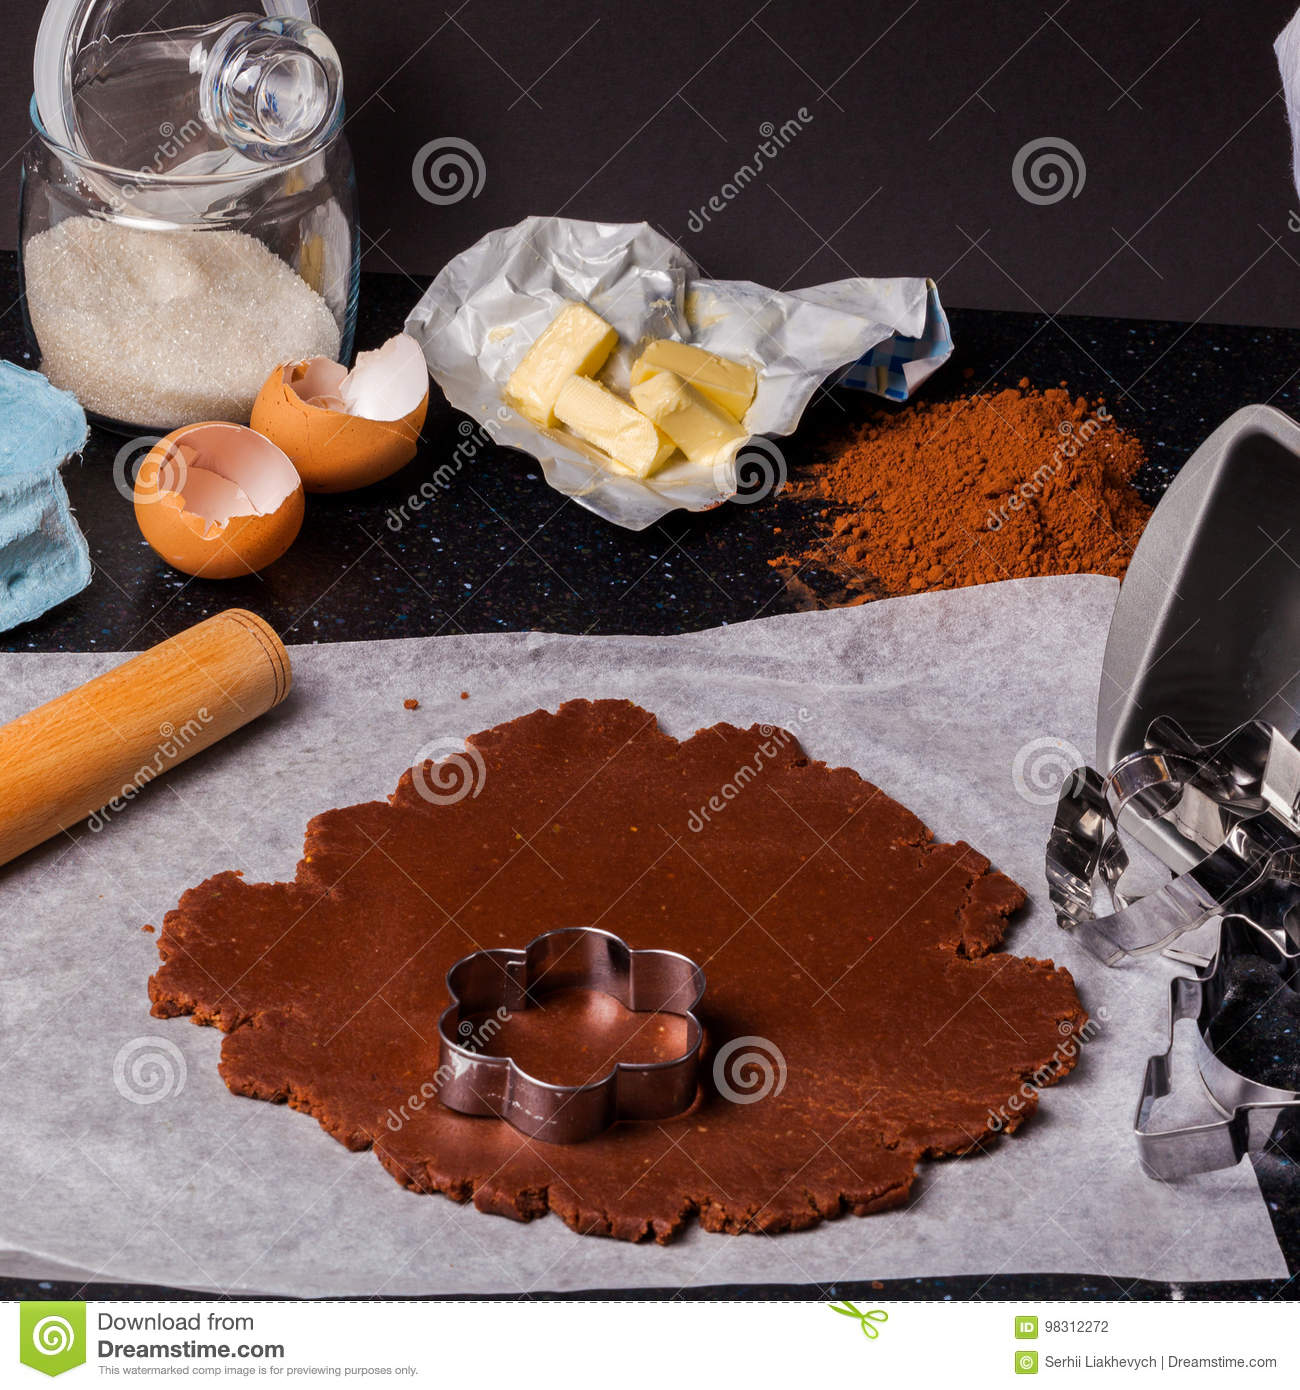 the process of baking a cake